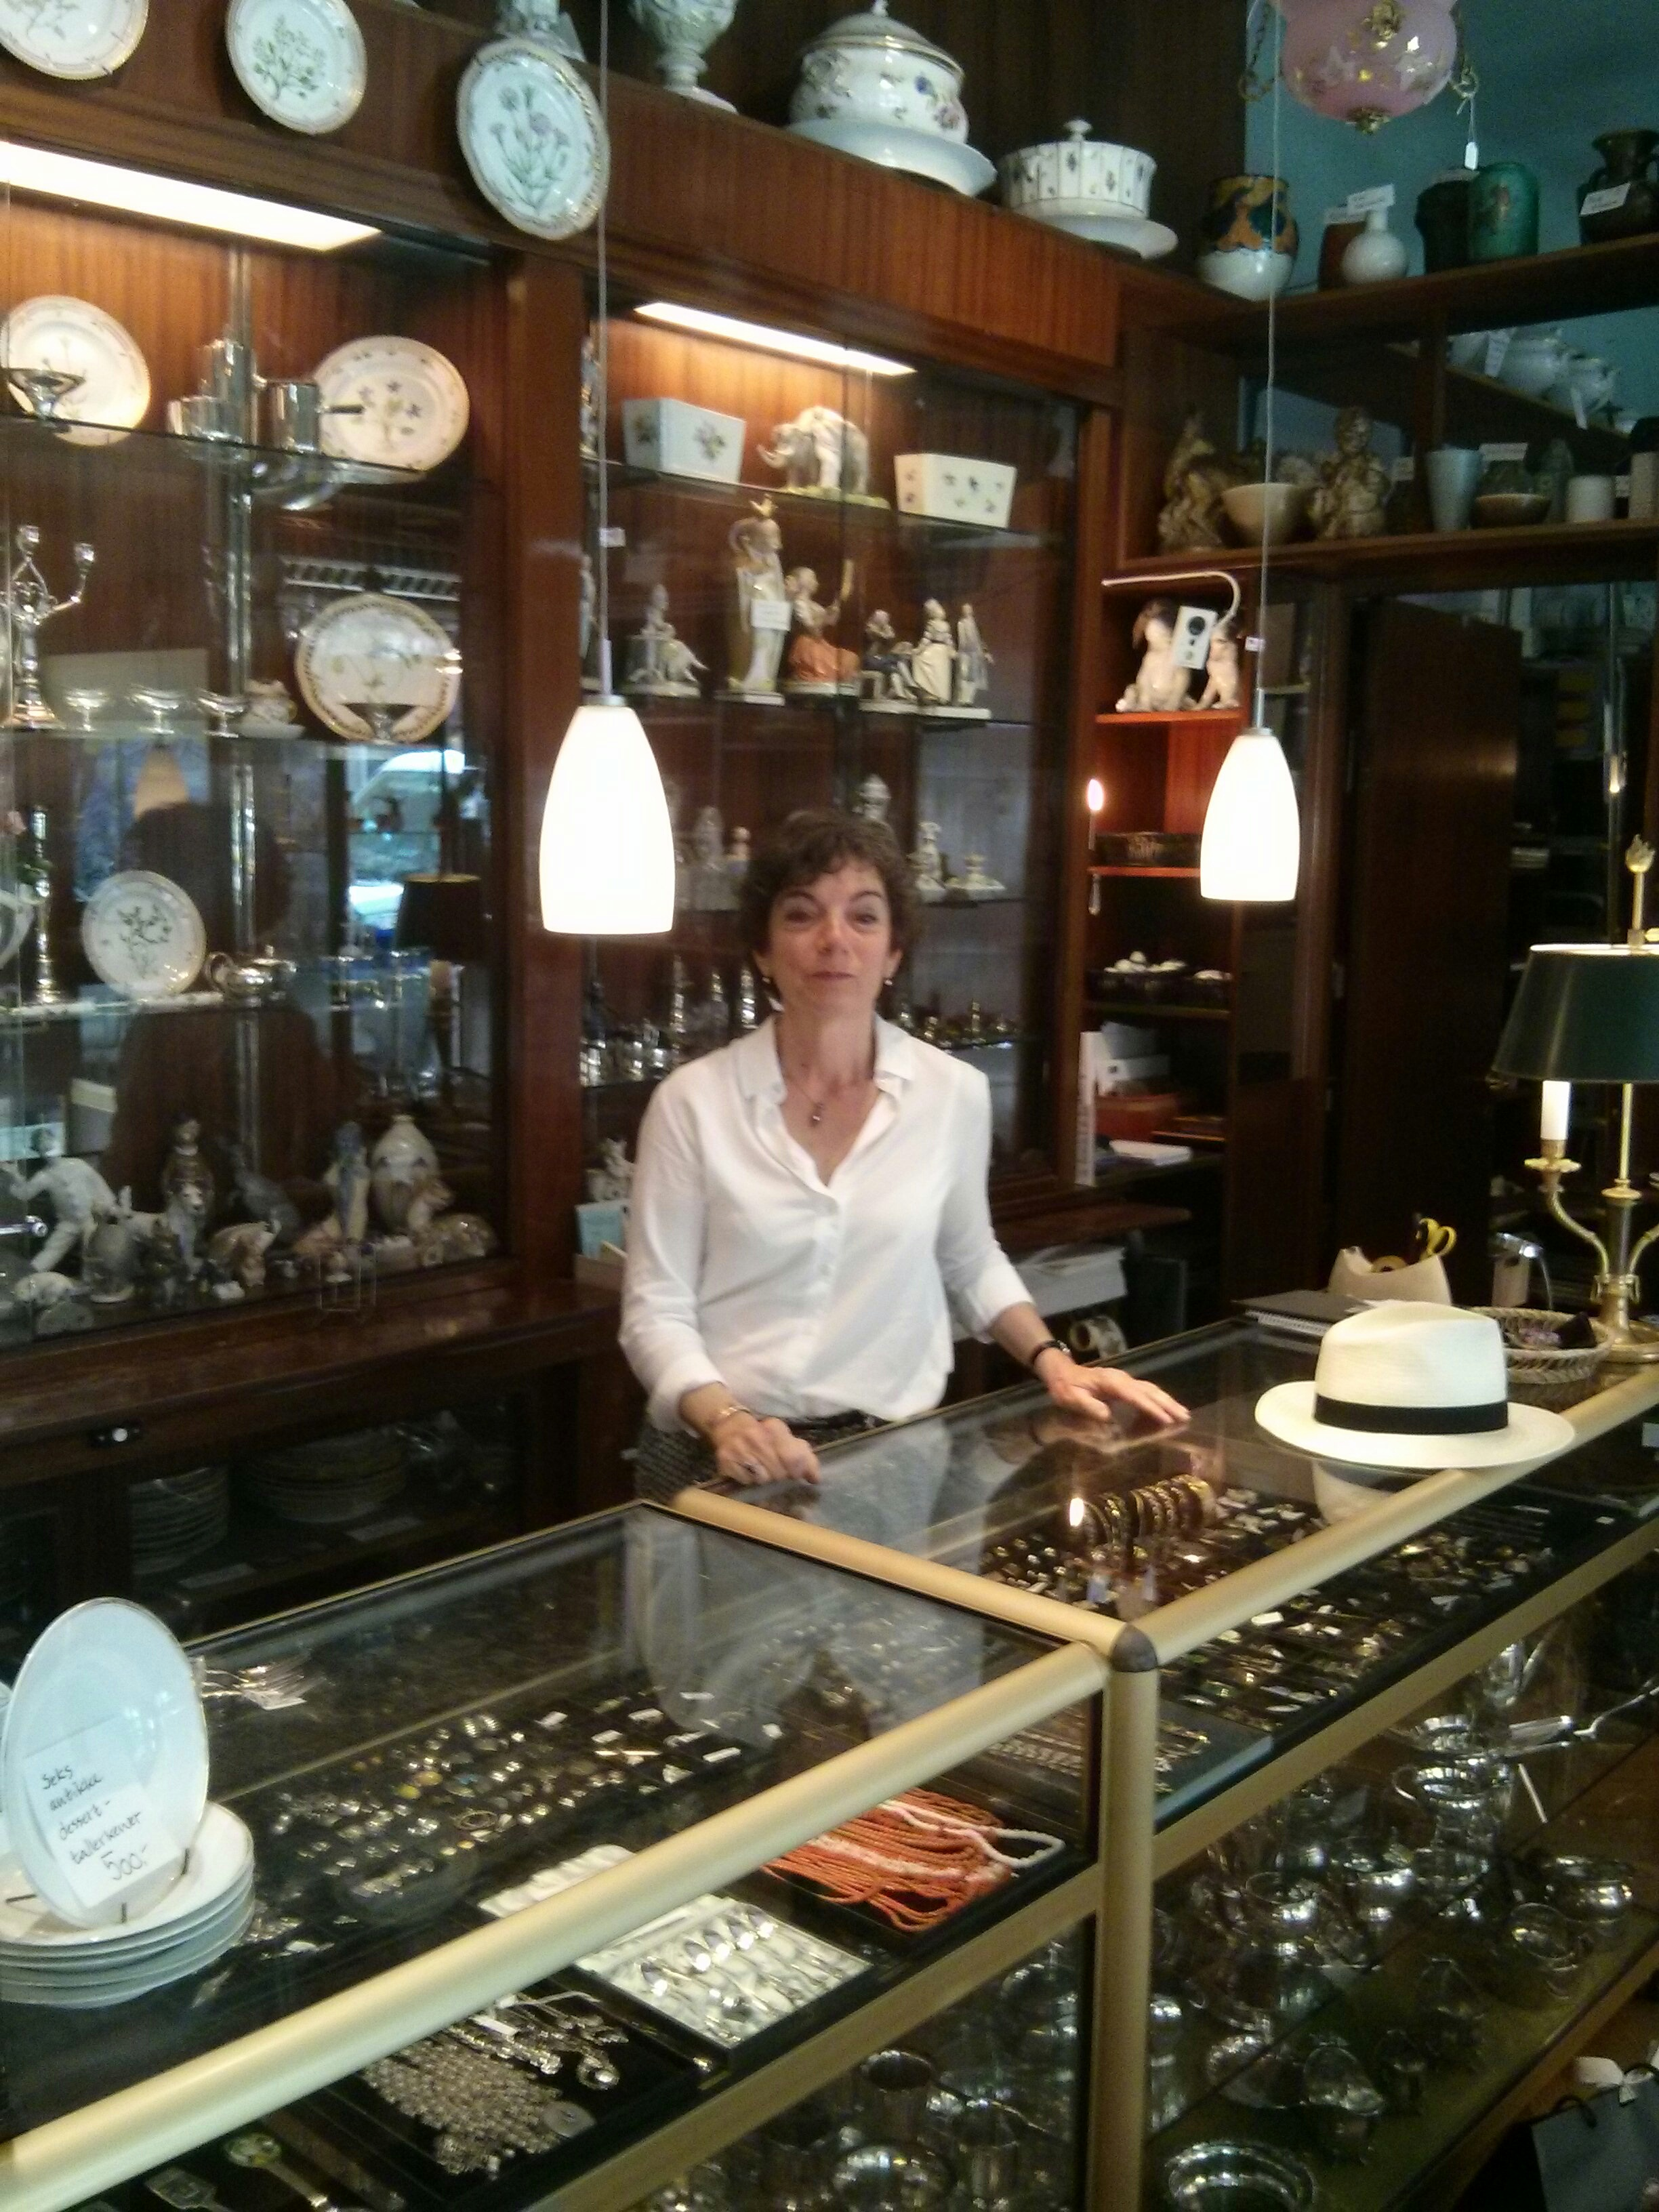 in her shop, ira harttogsohn, the owner and daughter of the founder ketti hartogsohn. i have visited the shop many times, always a good smell of the old days. good people to deal with.